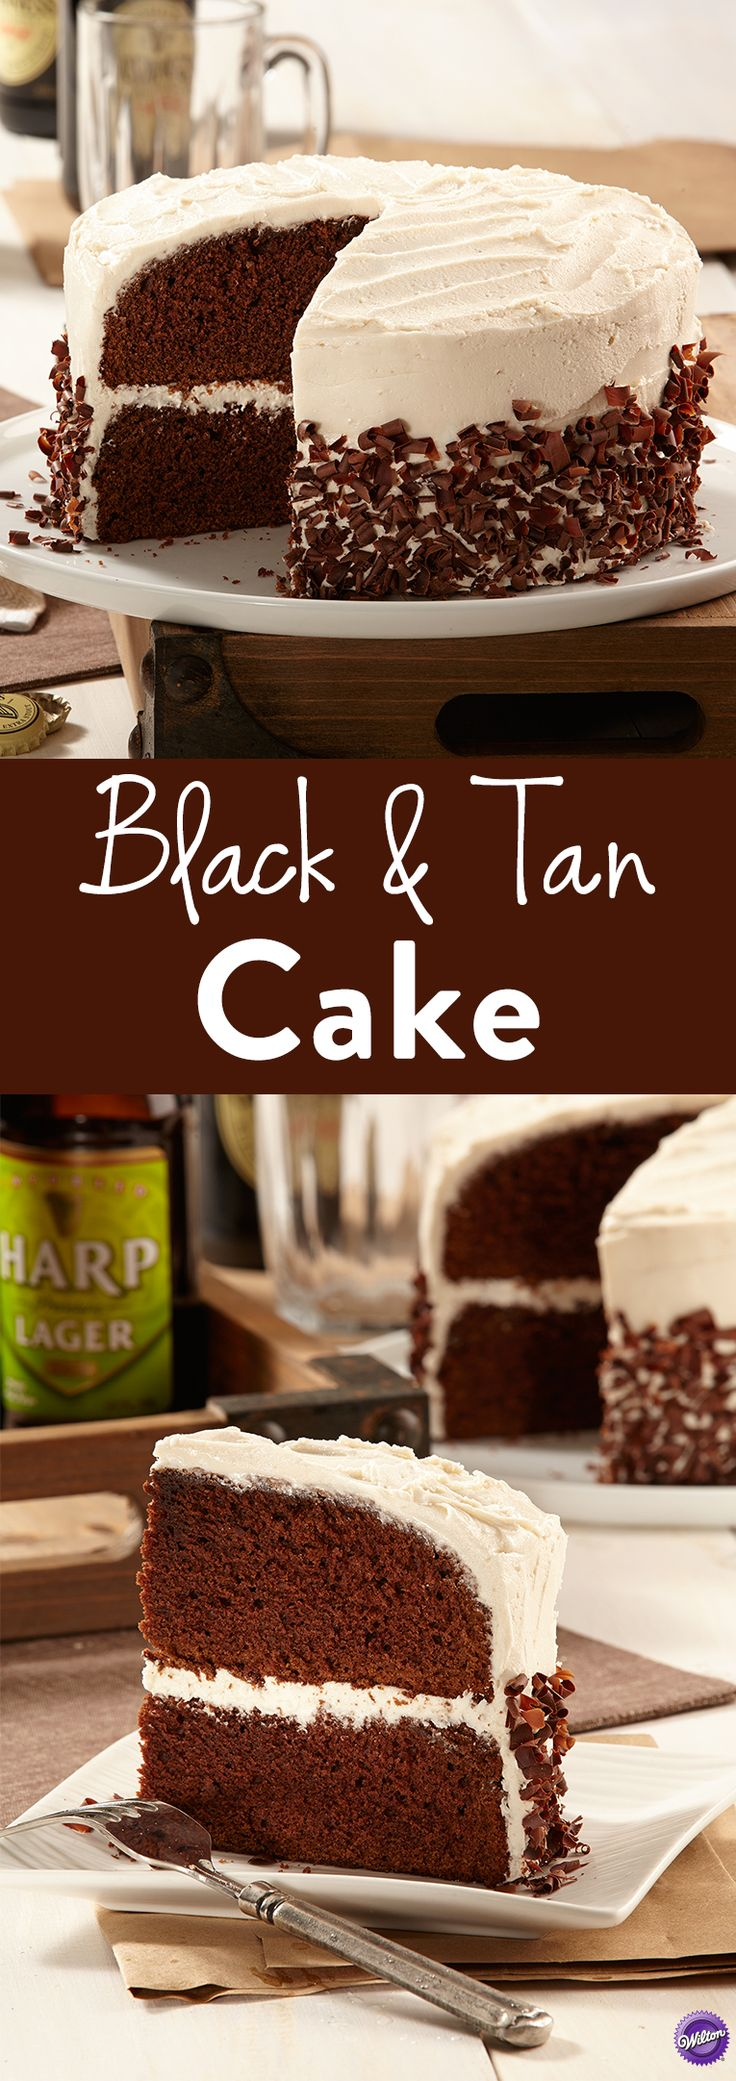 How to Make Black & Tan Cake - Taste the incredible combination of Guinness and Harps in this ultimate Black and Tan cake. Guinness and salt increase the bitterness in the chocolate, while the Harps adds a light and smooth balance of flavor. So much goodness and so fun to make. Bake the cake for occasions like Father's Day, wedding shower parties, or even for just an evening gathering with friends.